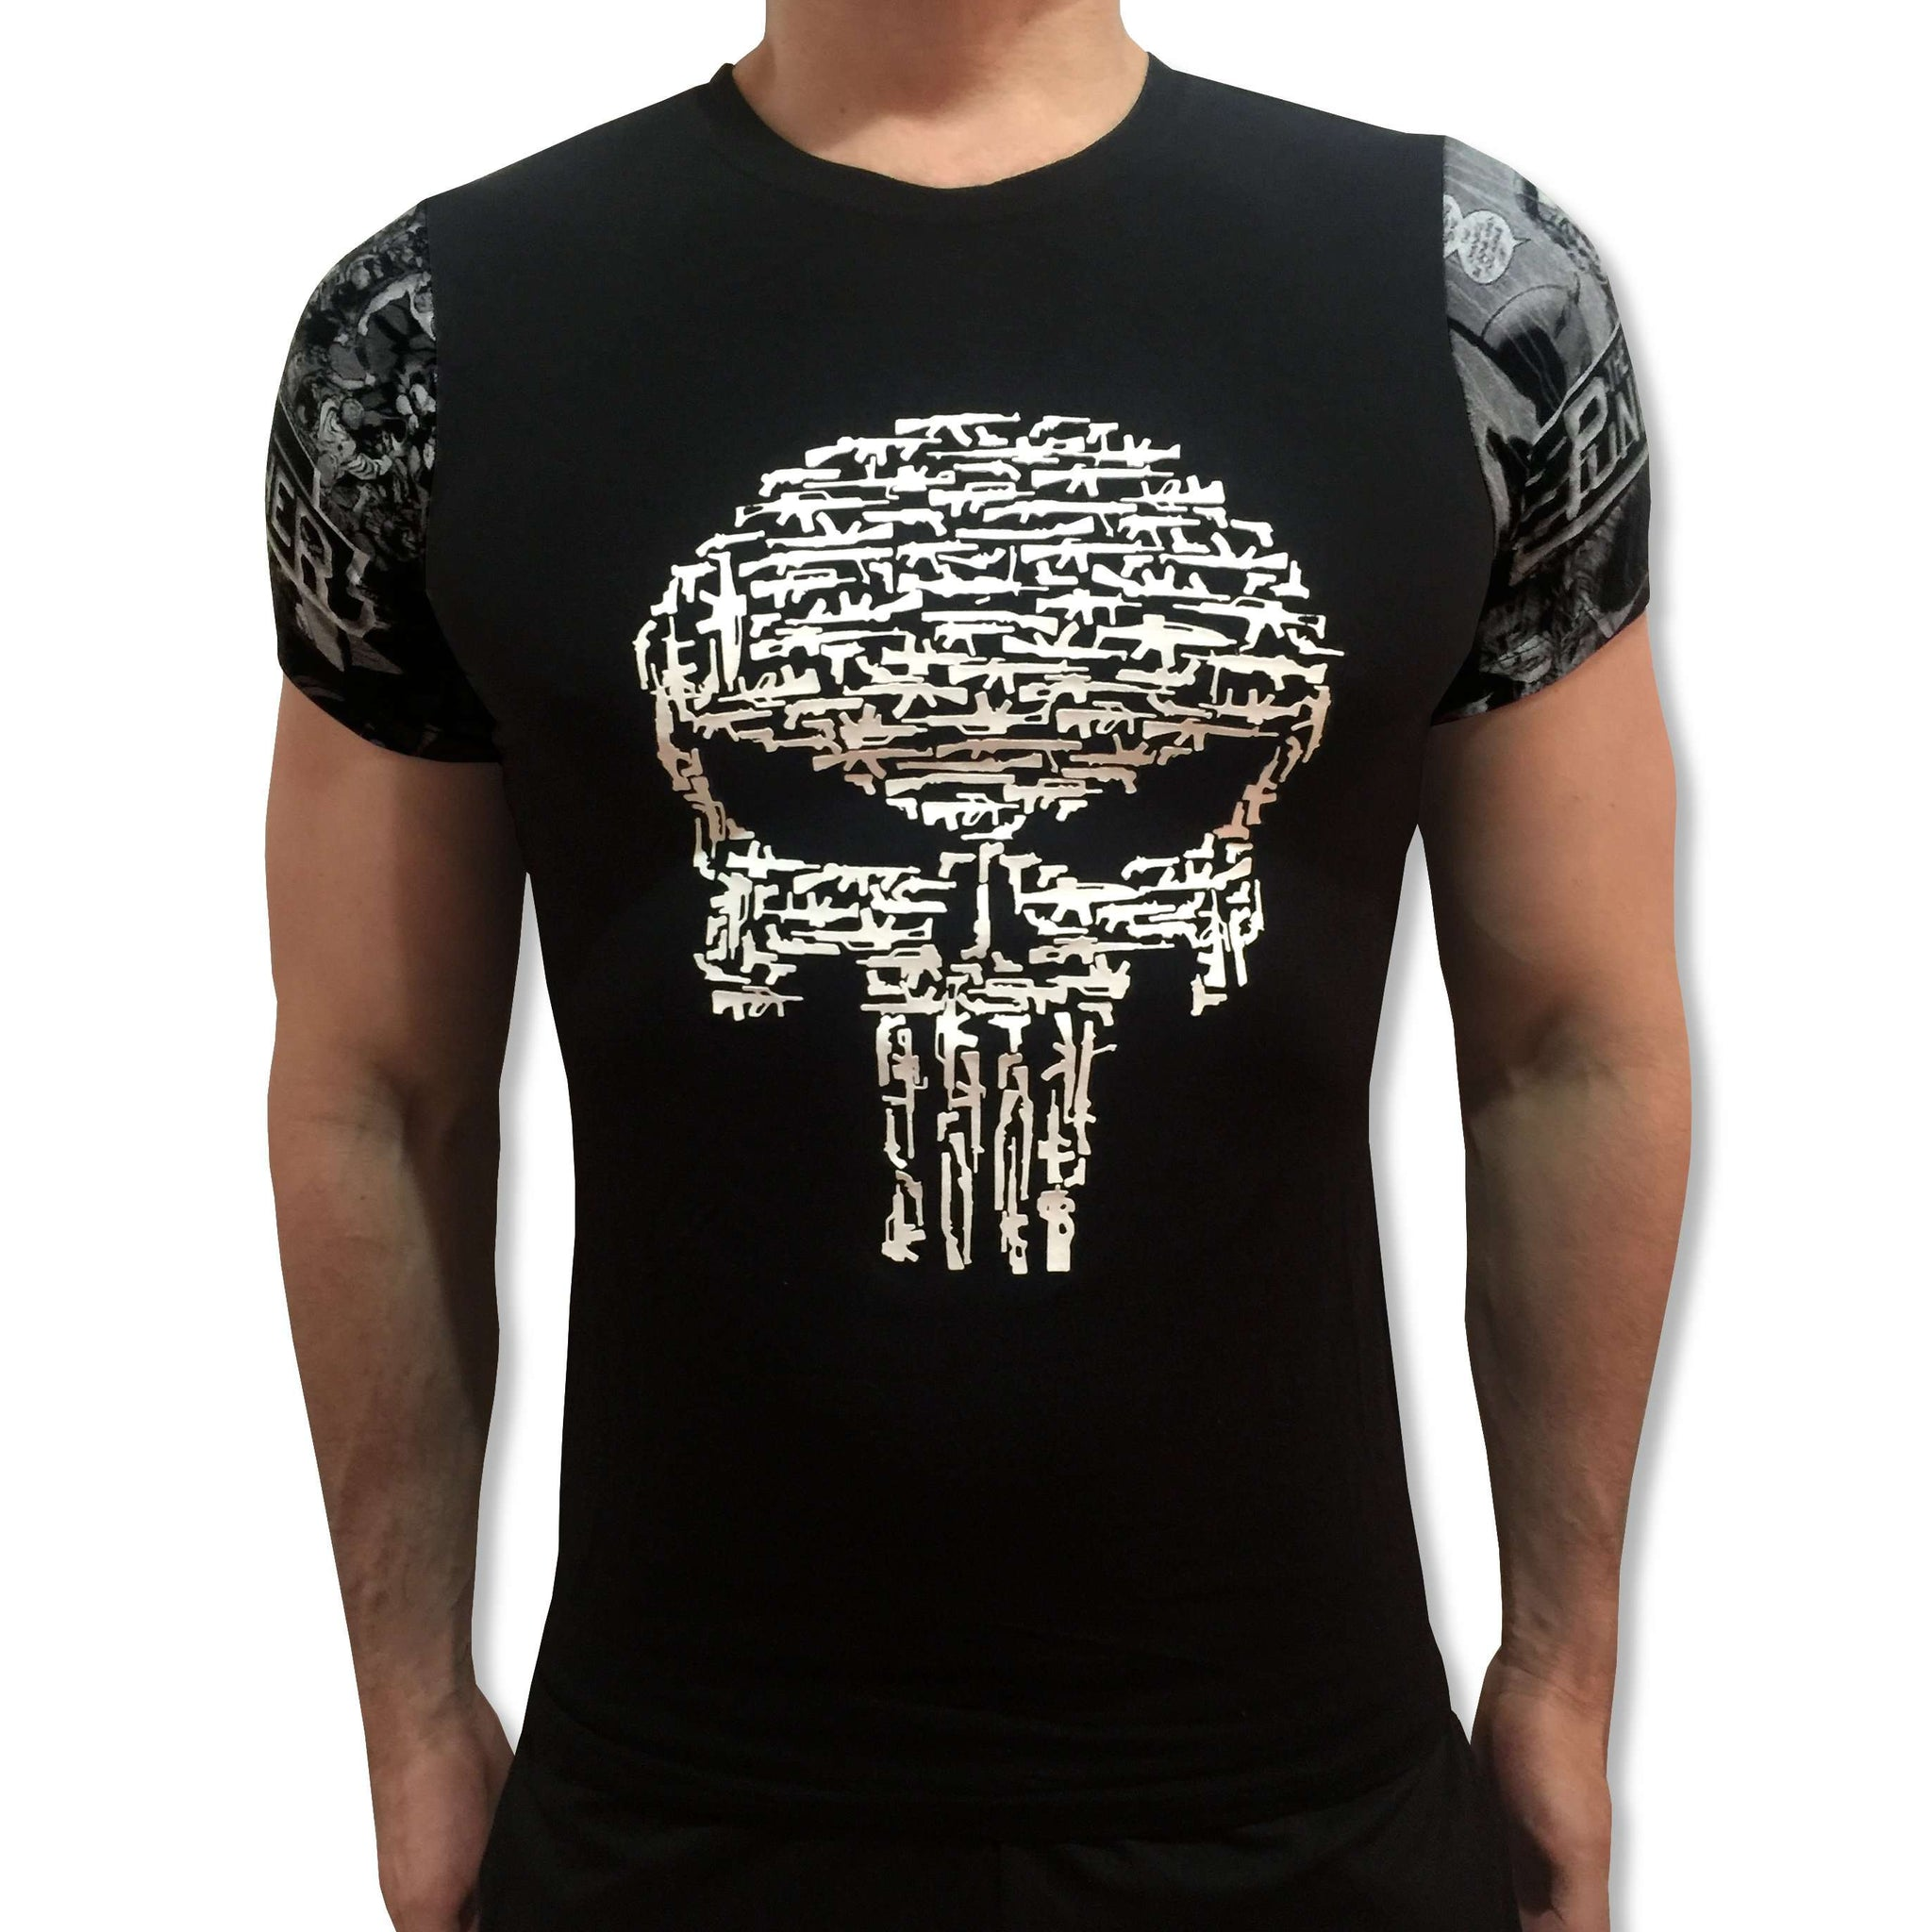 Punisher Embossed Tee! t-shirt SugarCane1977 tshirt shirt t-shirt tee - SugarCane1977